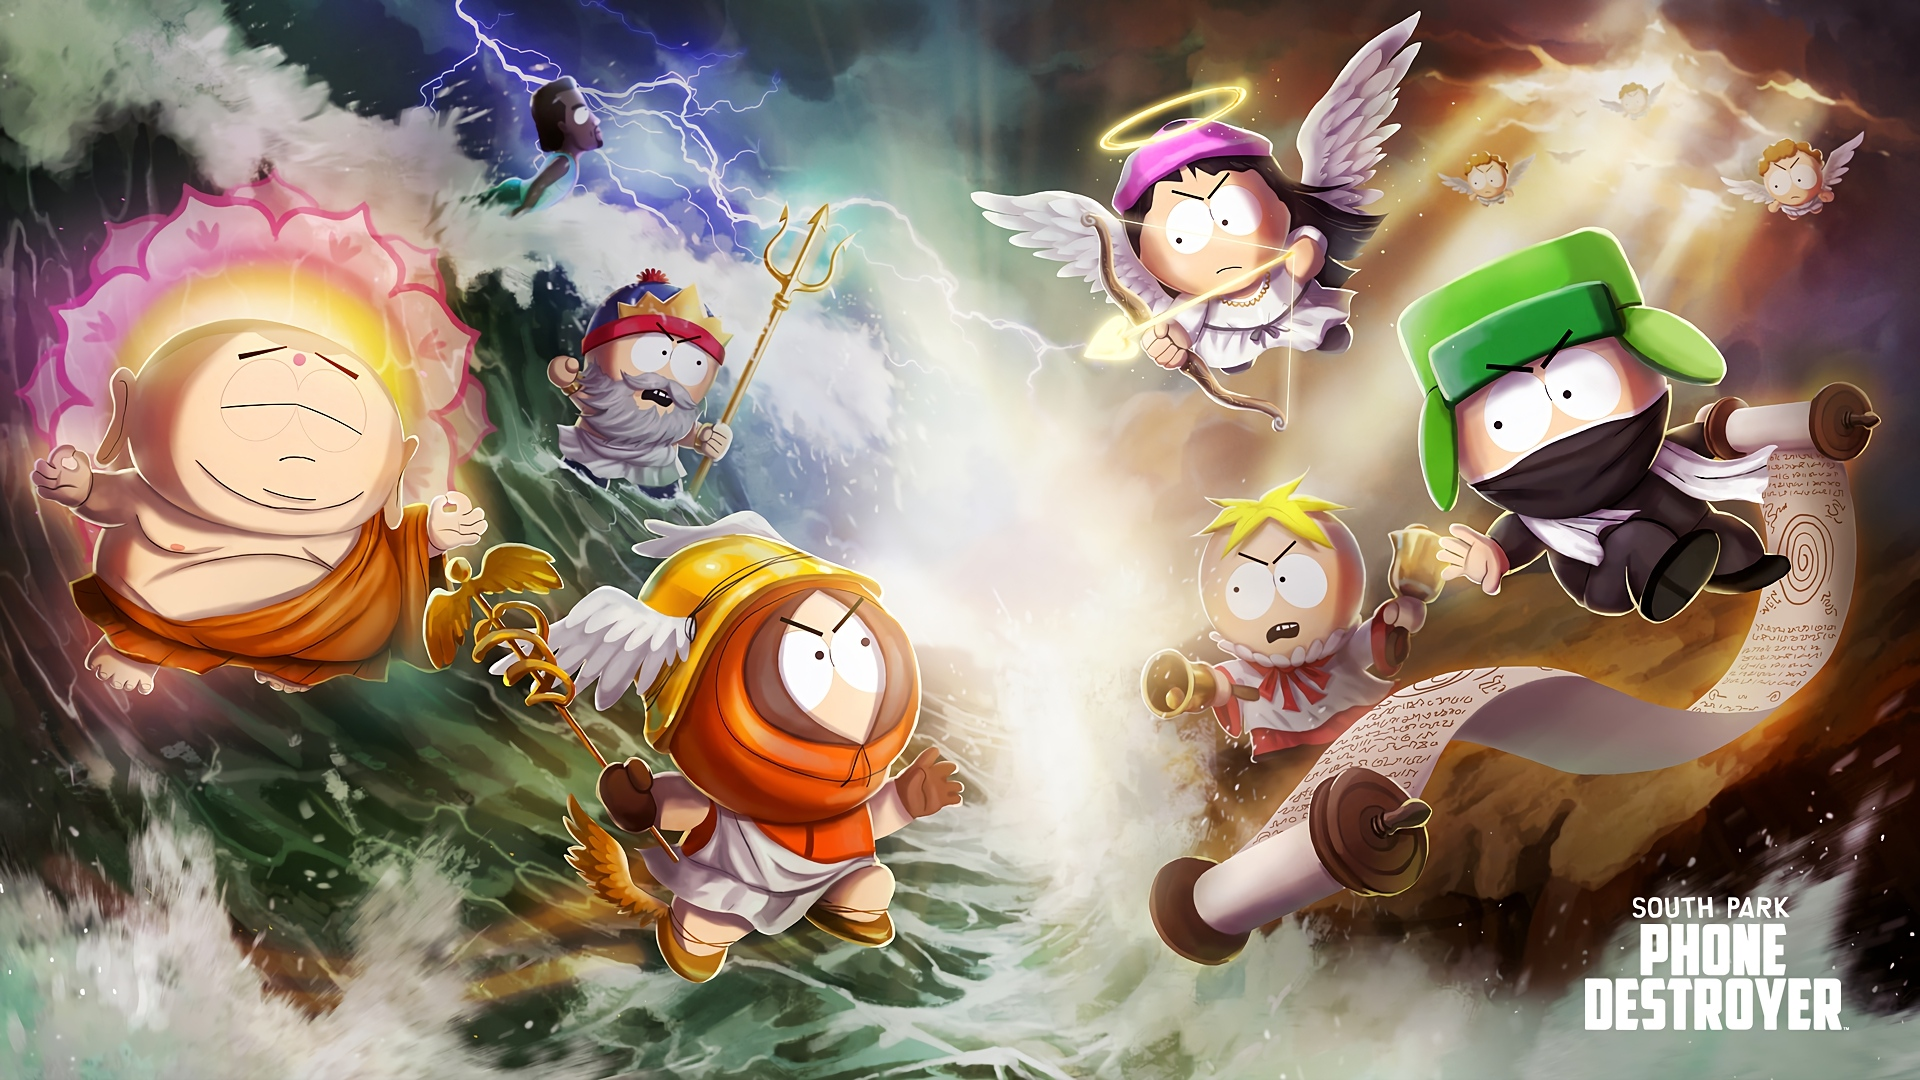 Tv Show South Park Wallpaper Id South Park Phone Destroyer